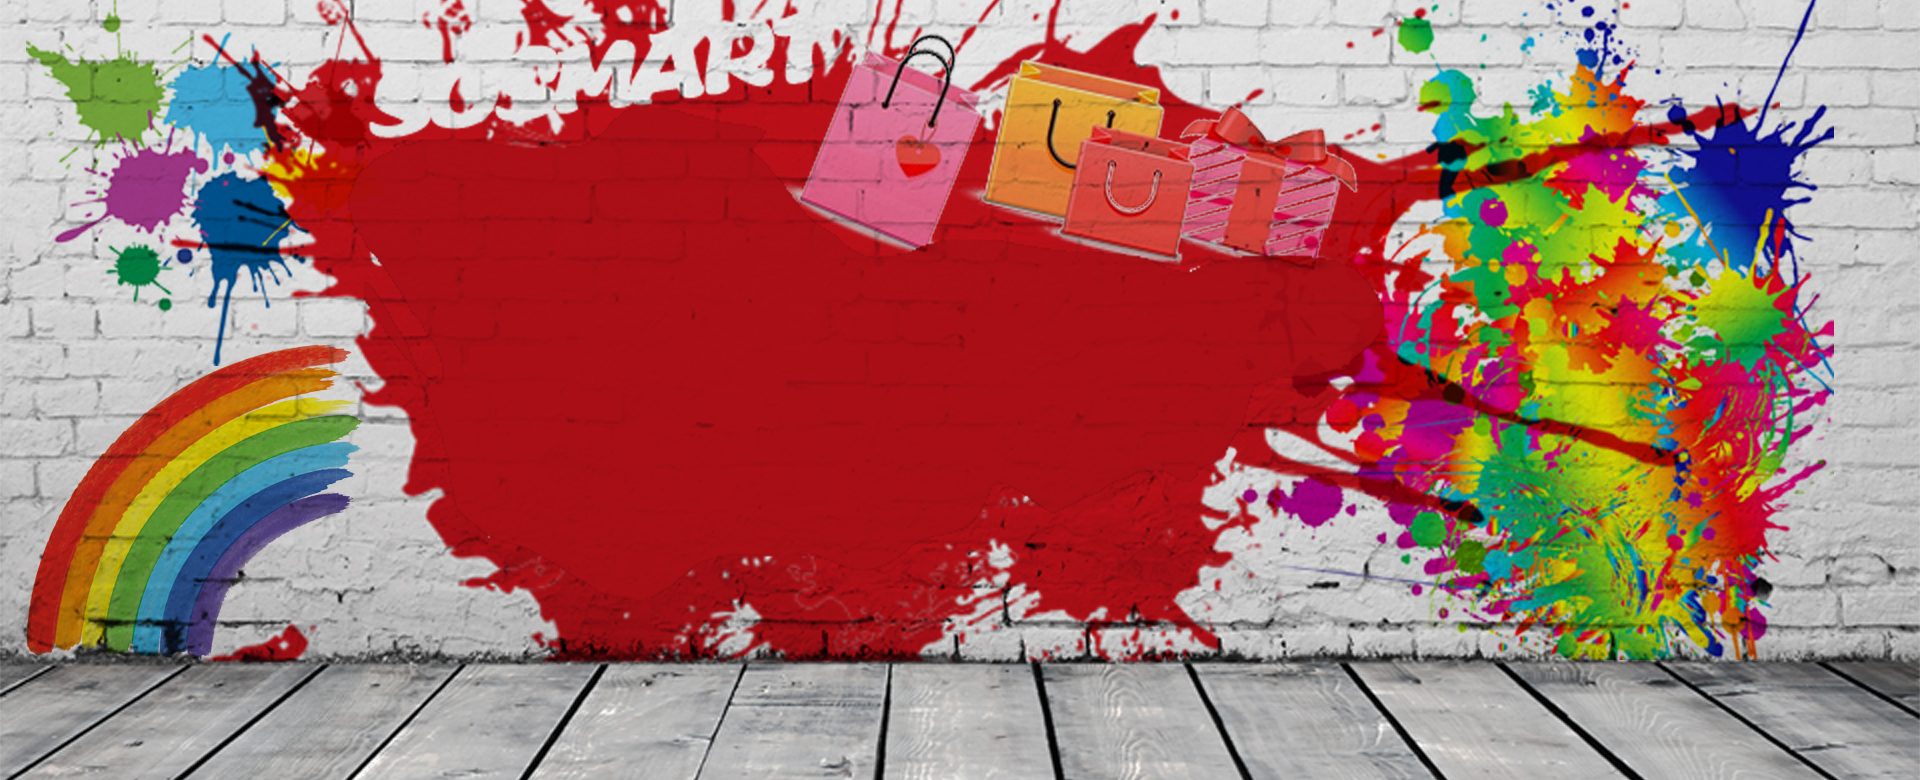 Graffiti Background Graffiti Wall Painting Background Image For Free Download